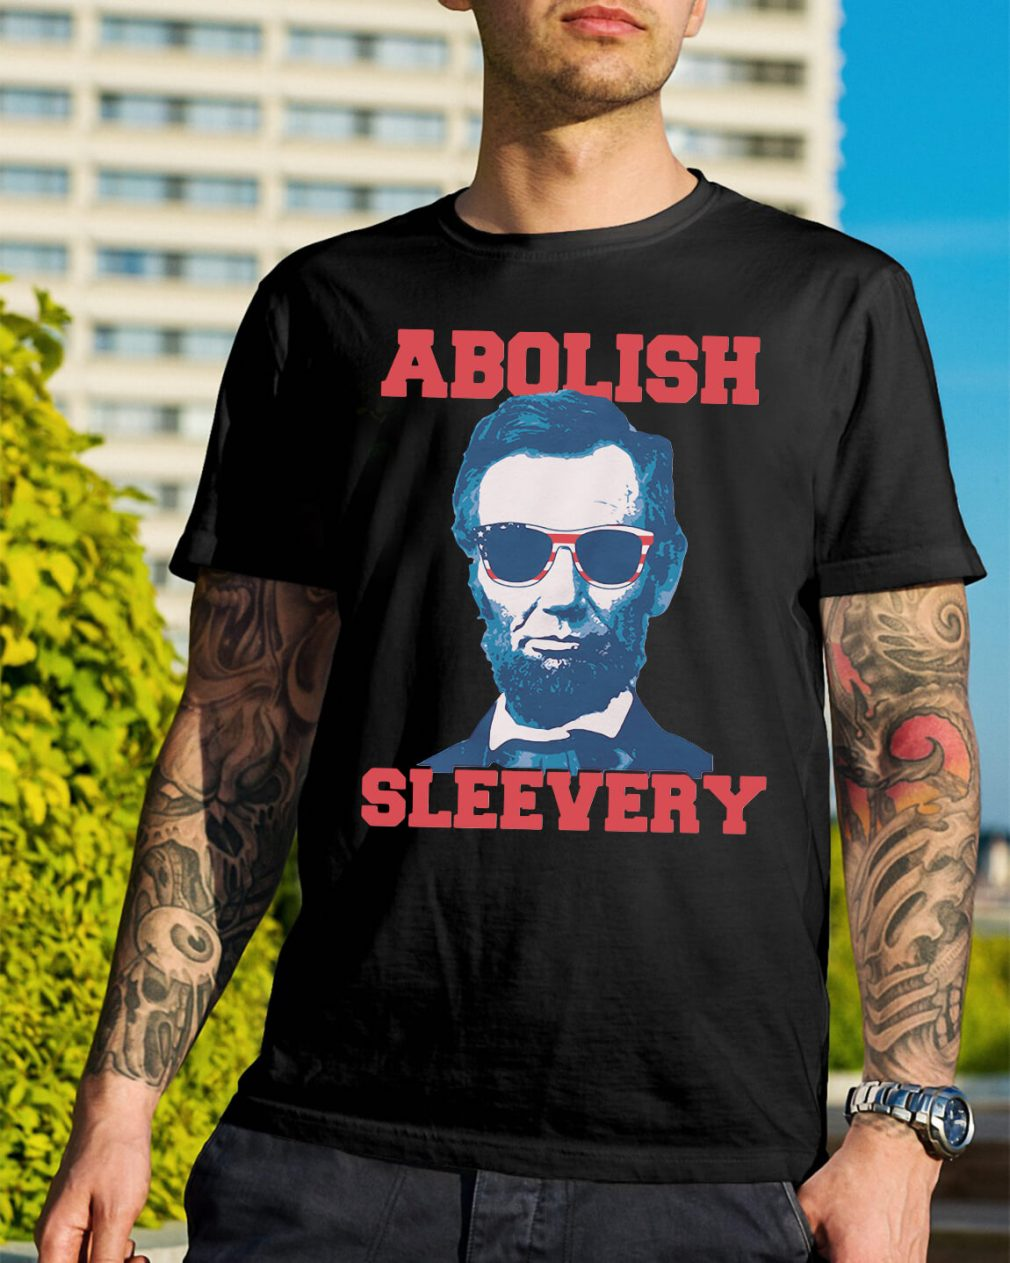 Abolish Sleevery shirt